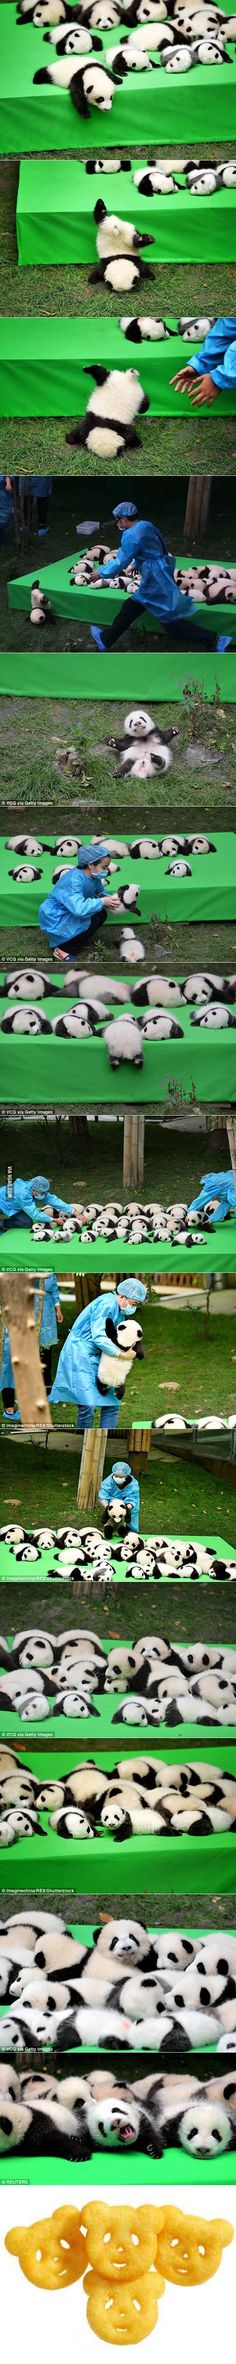 Baby Panda Face-plants And Tumbles On Its First Debut In China